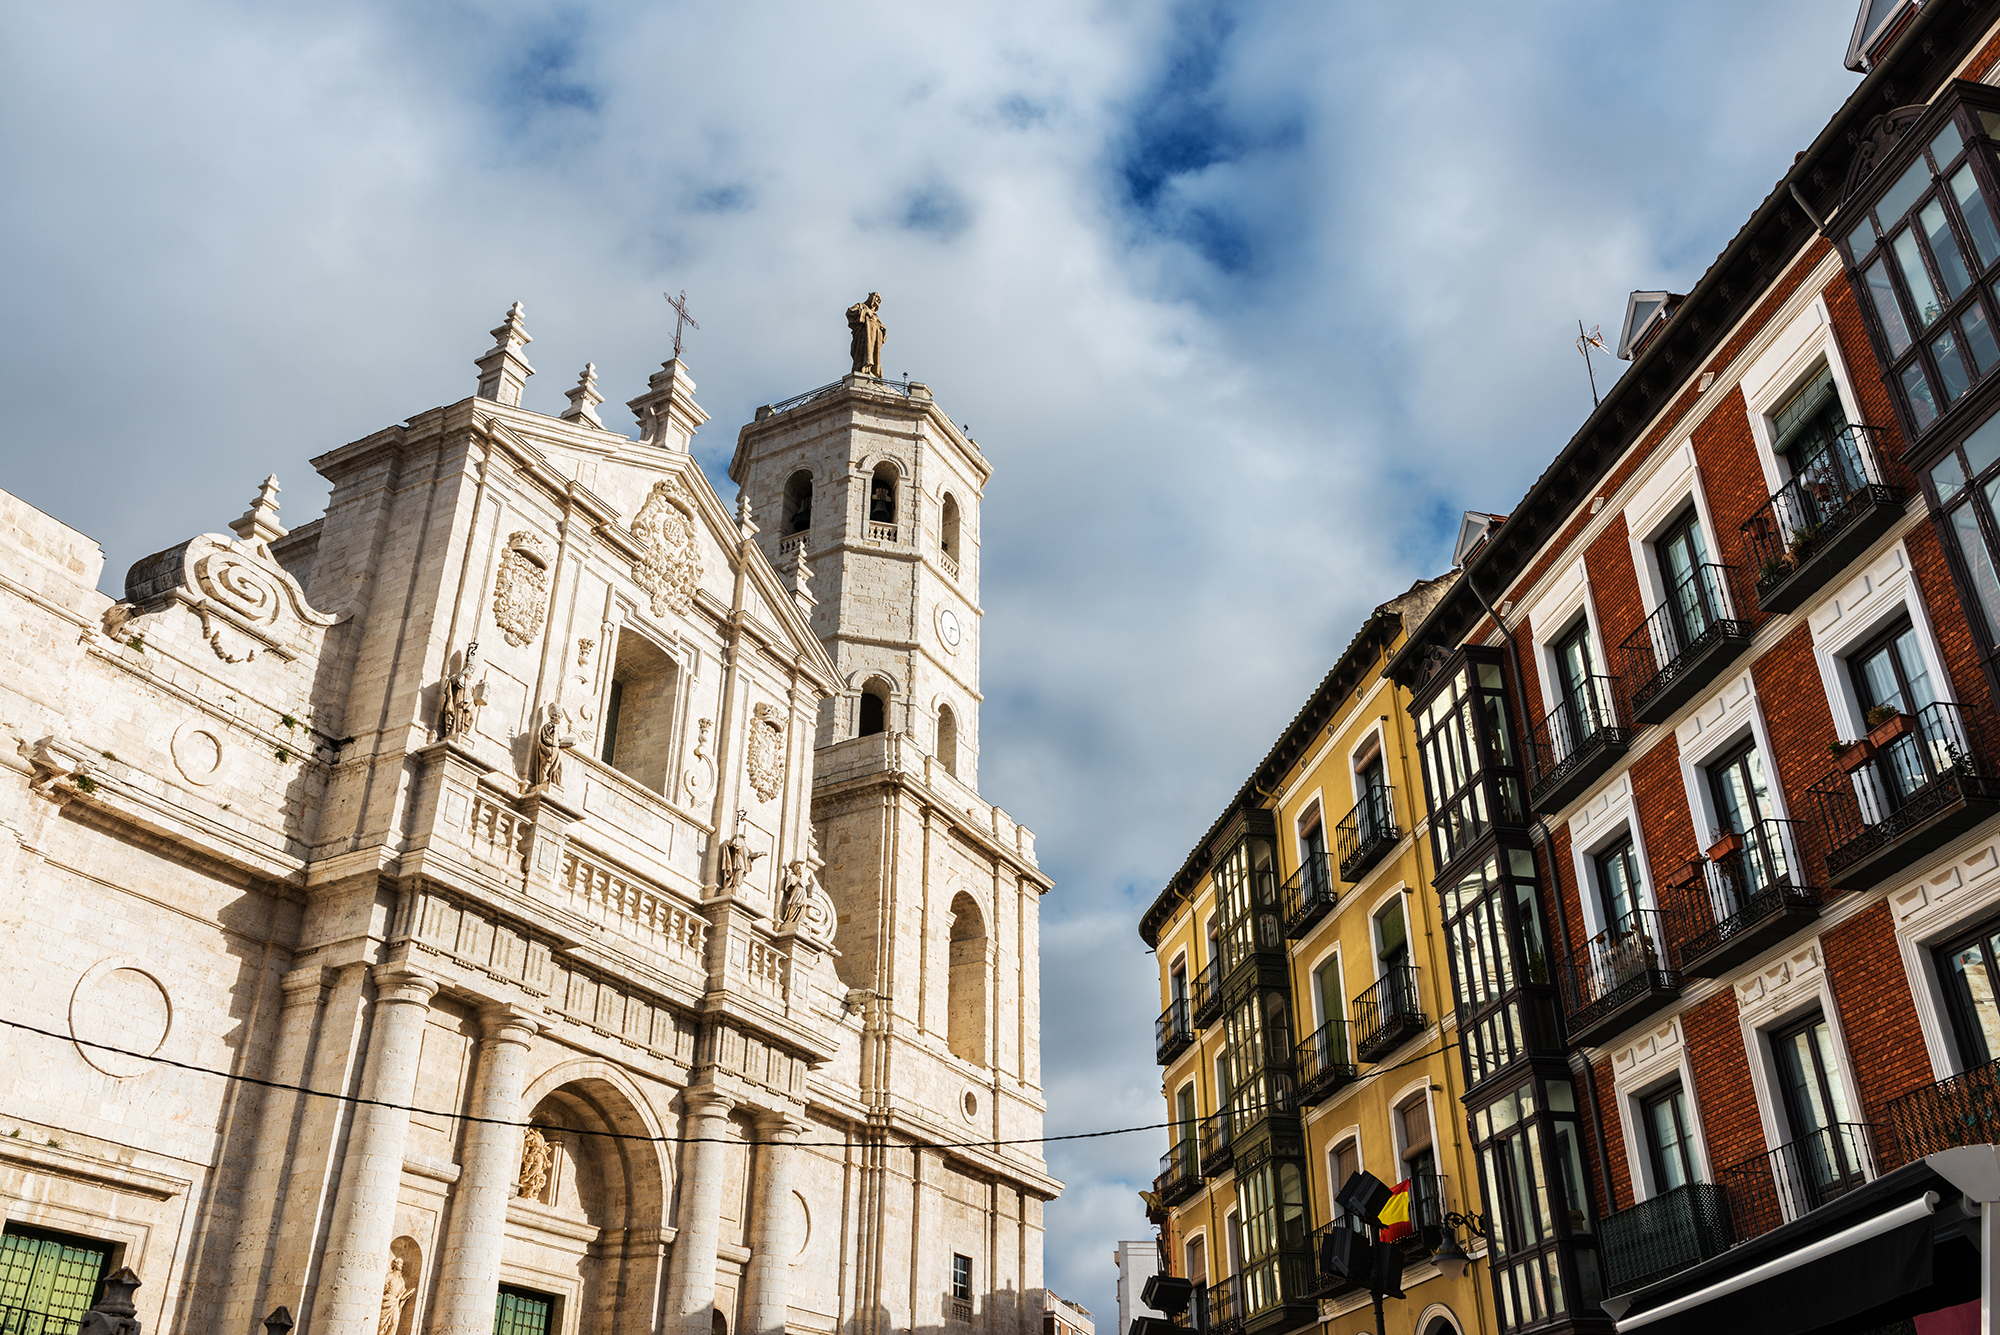 Facade and tower of the Cathedral of Valladolid